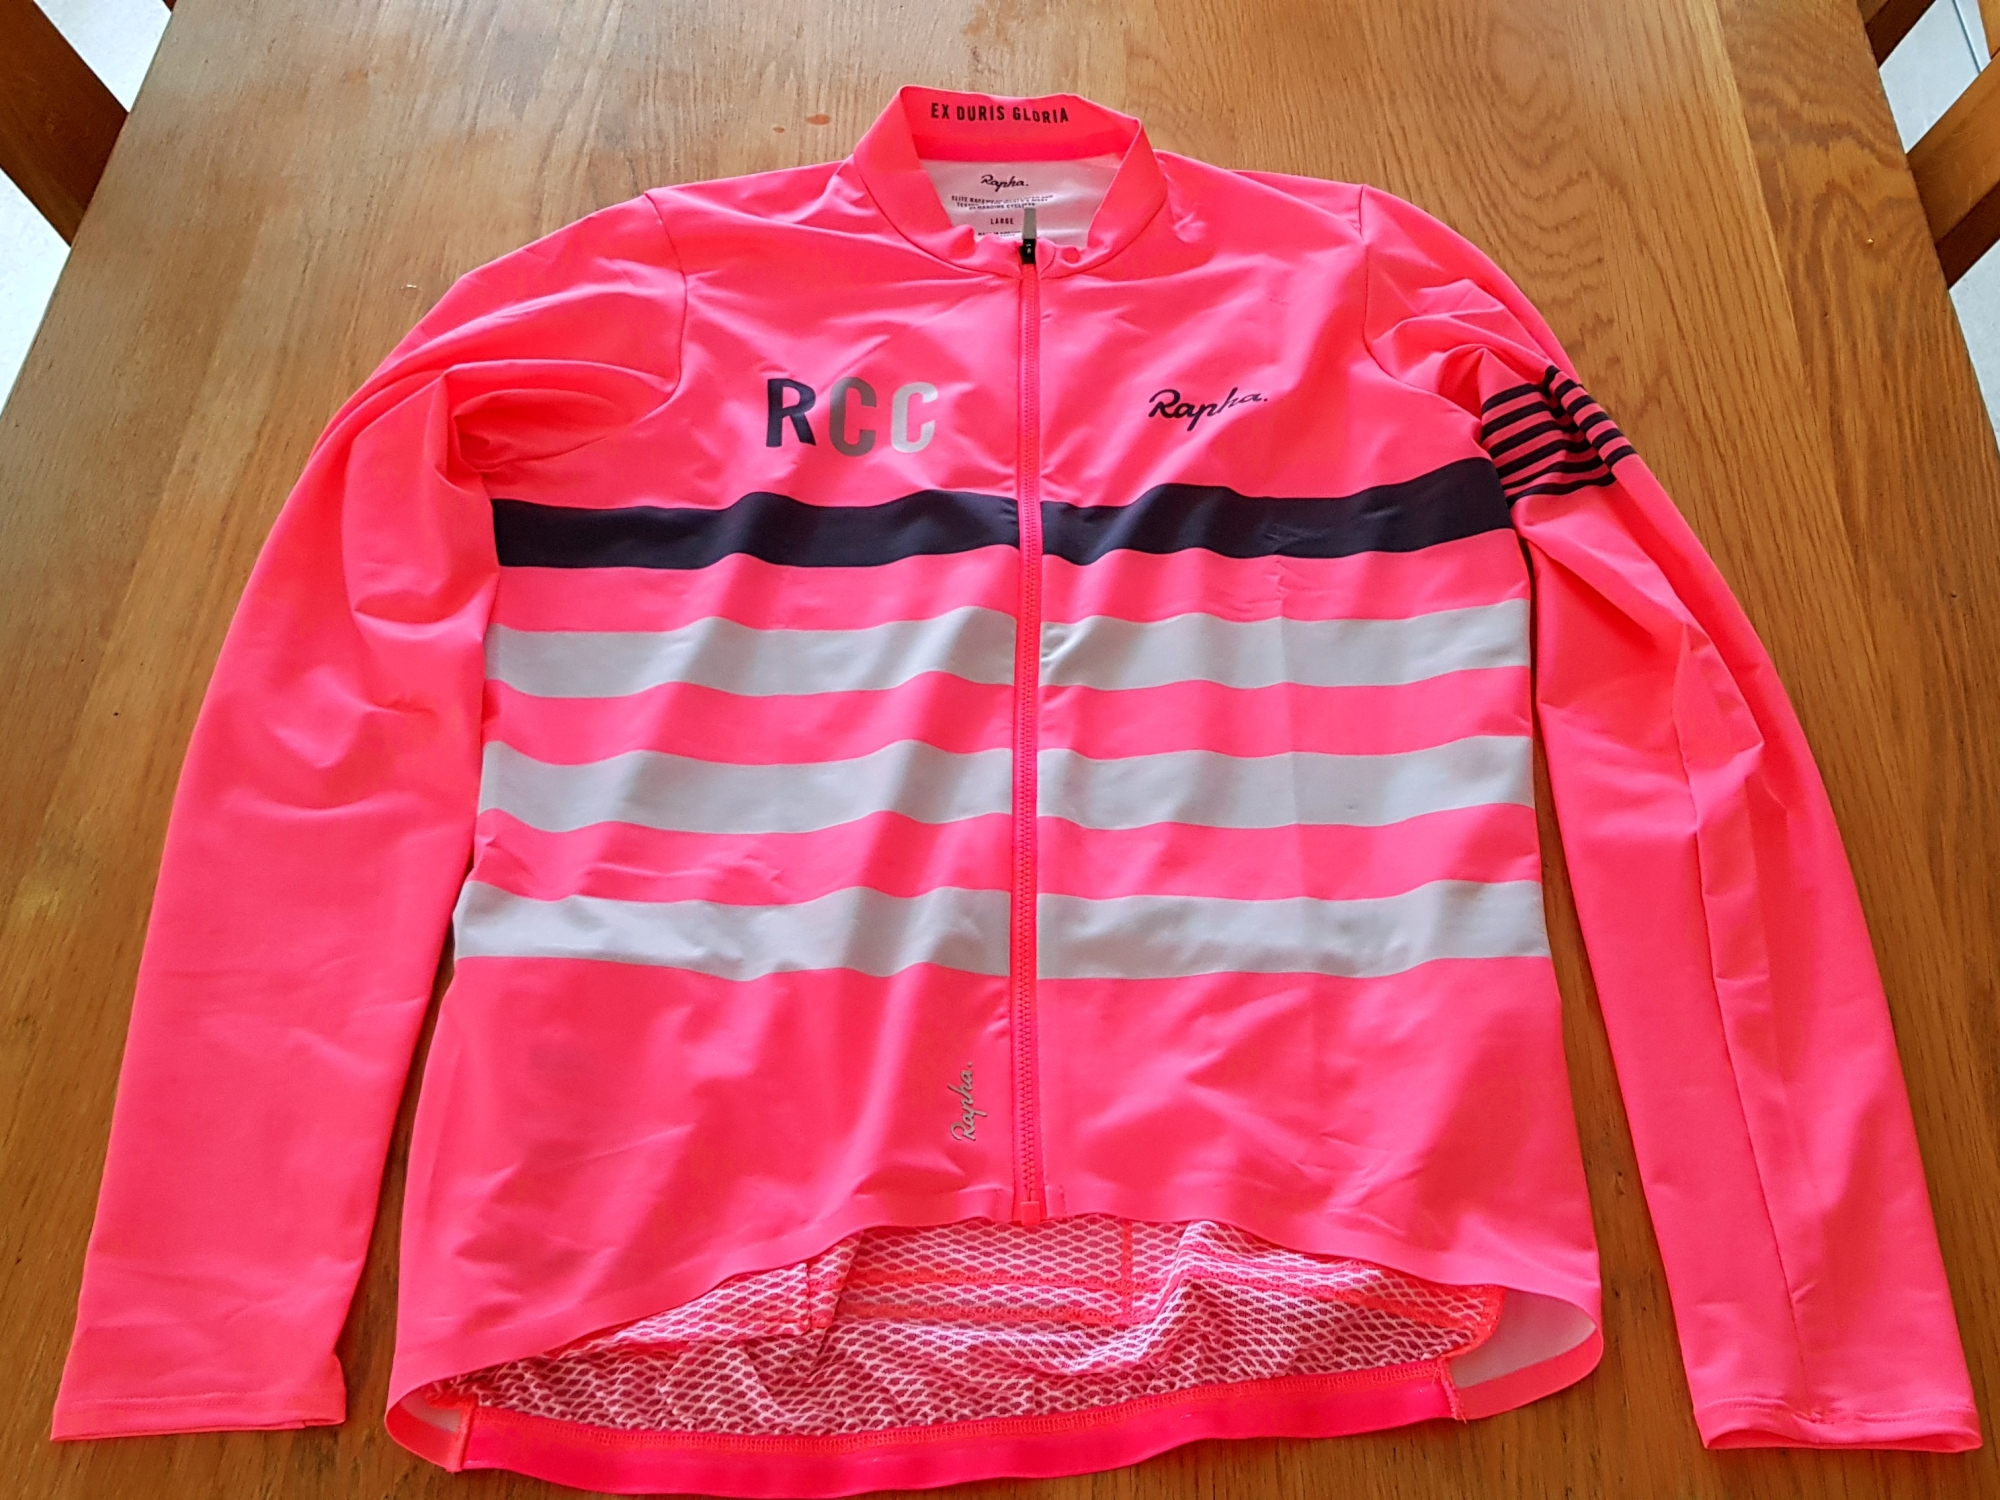 Rapha Brevet Insulated Gilet and Midweight Pro Team Jersey ... 23c417778